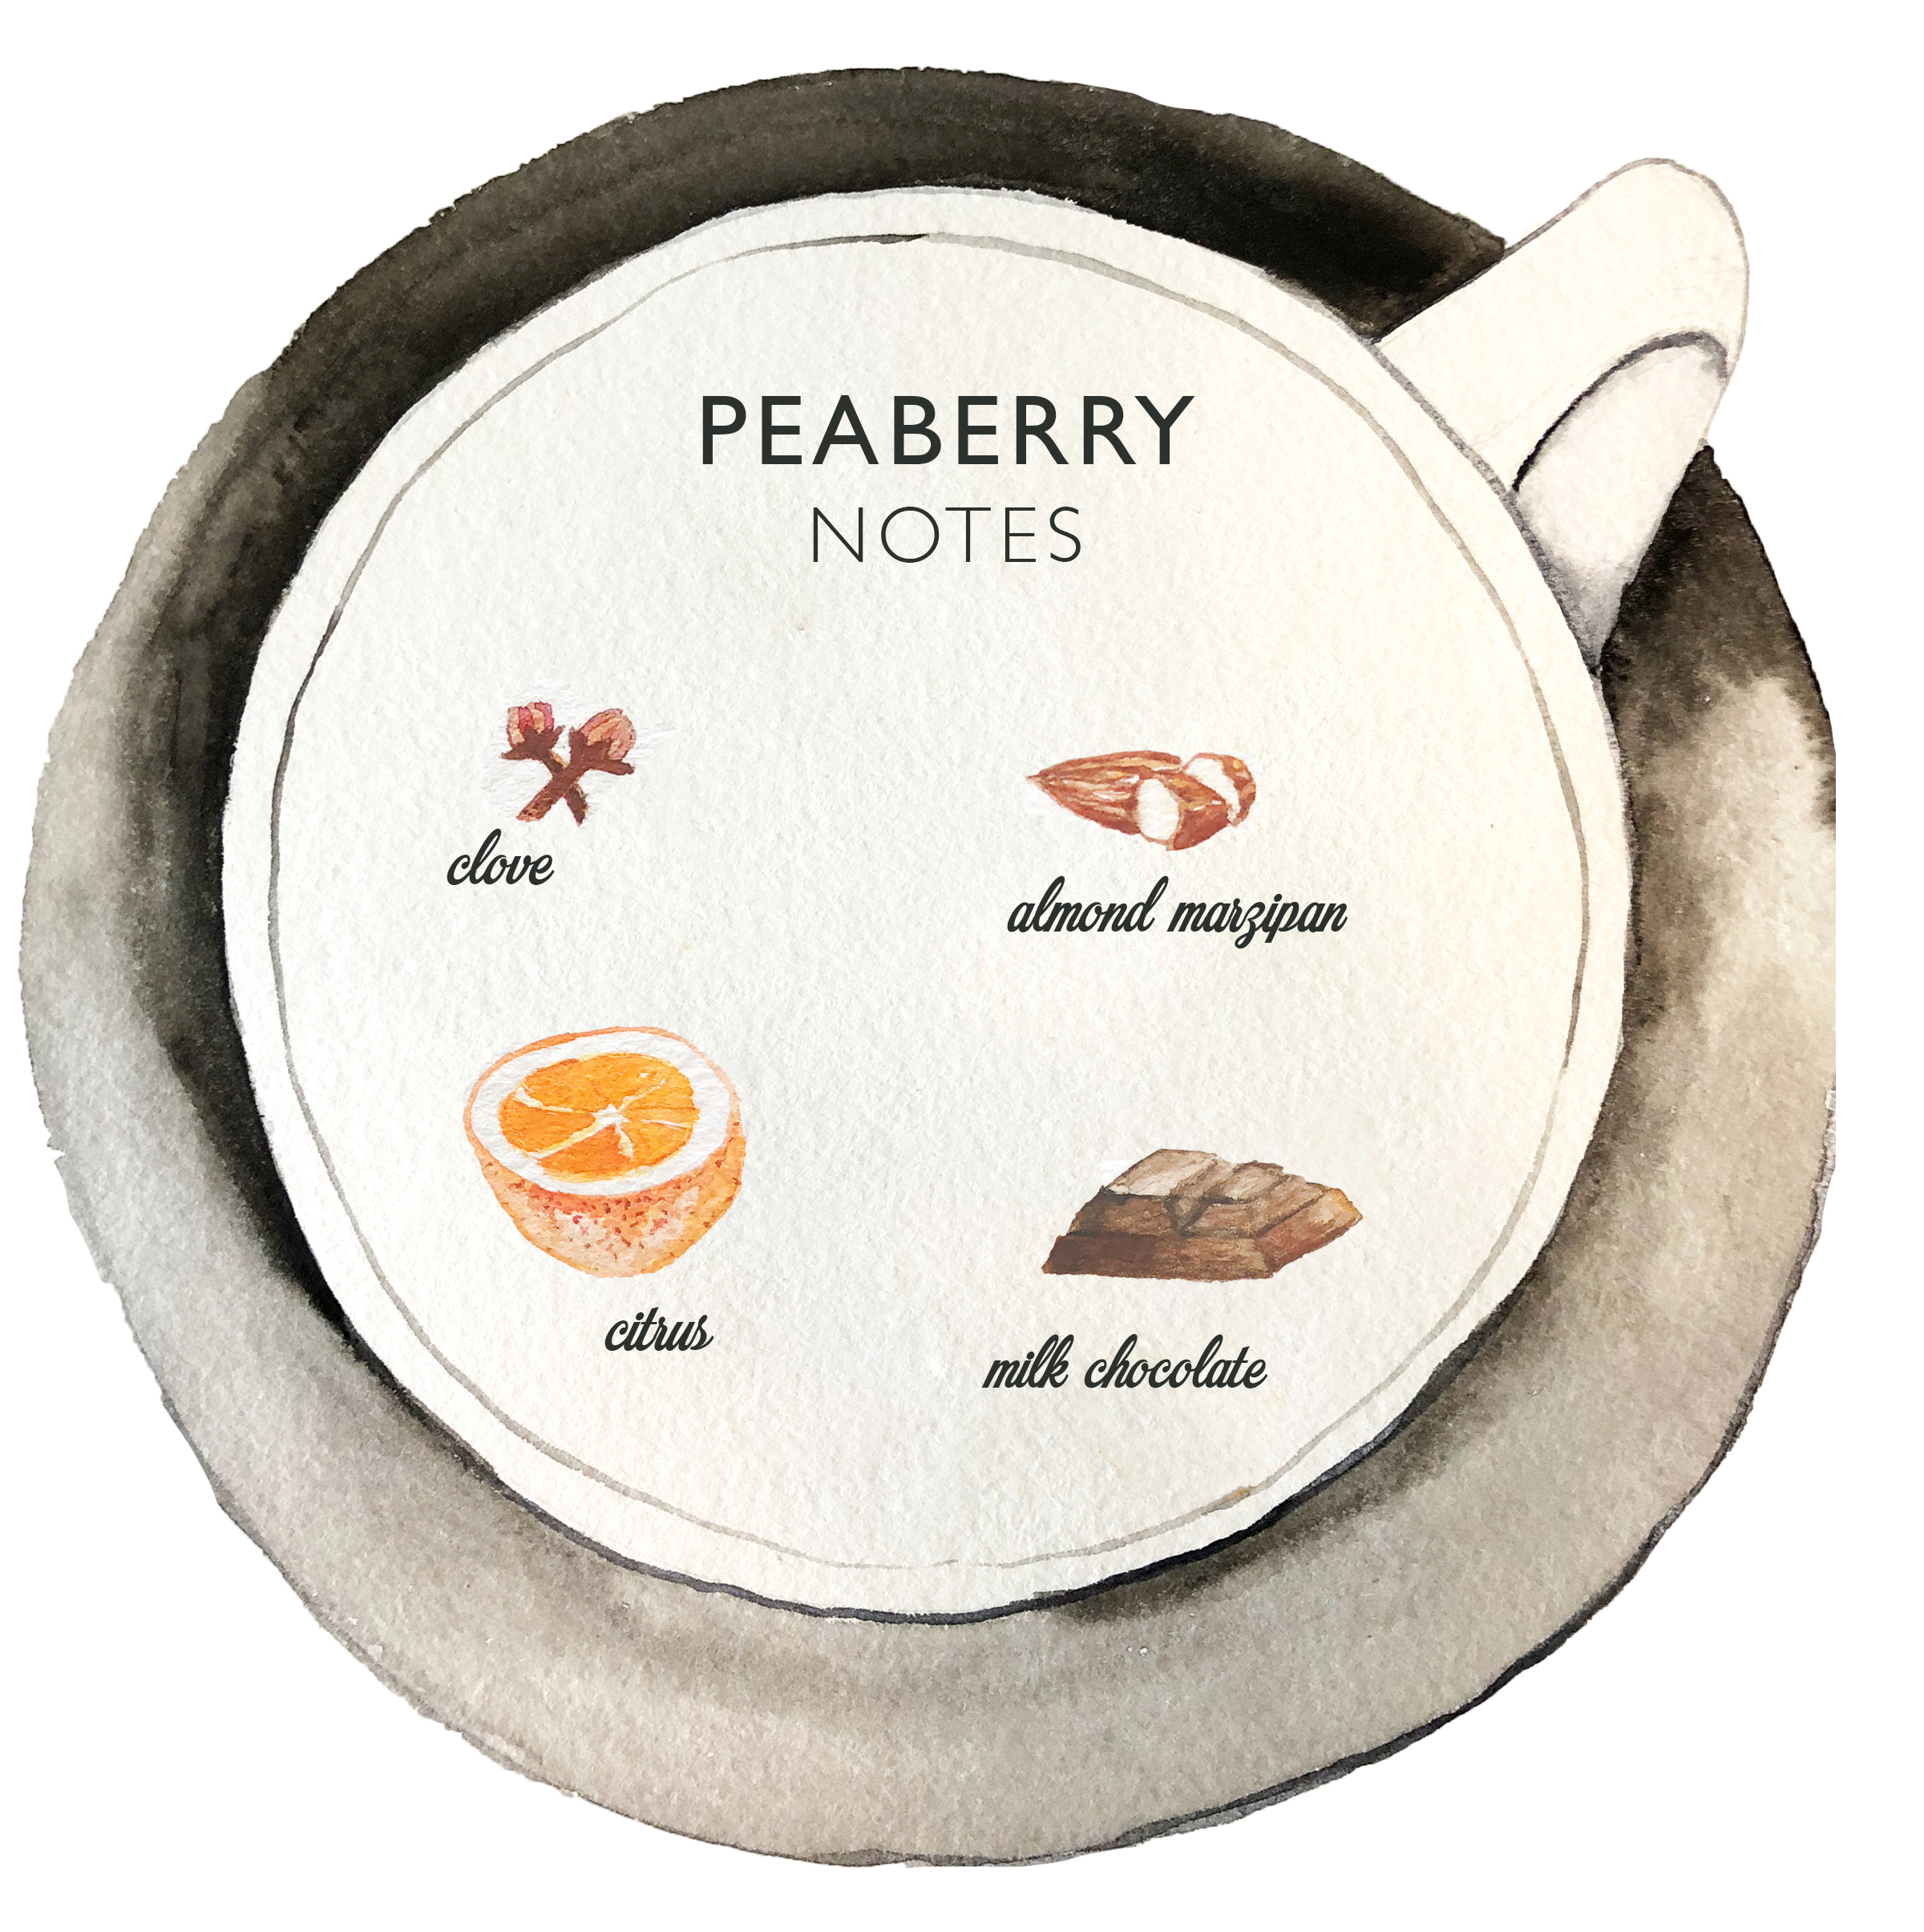 Peaberry notes KCTC watercolor.jpg